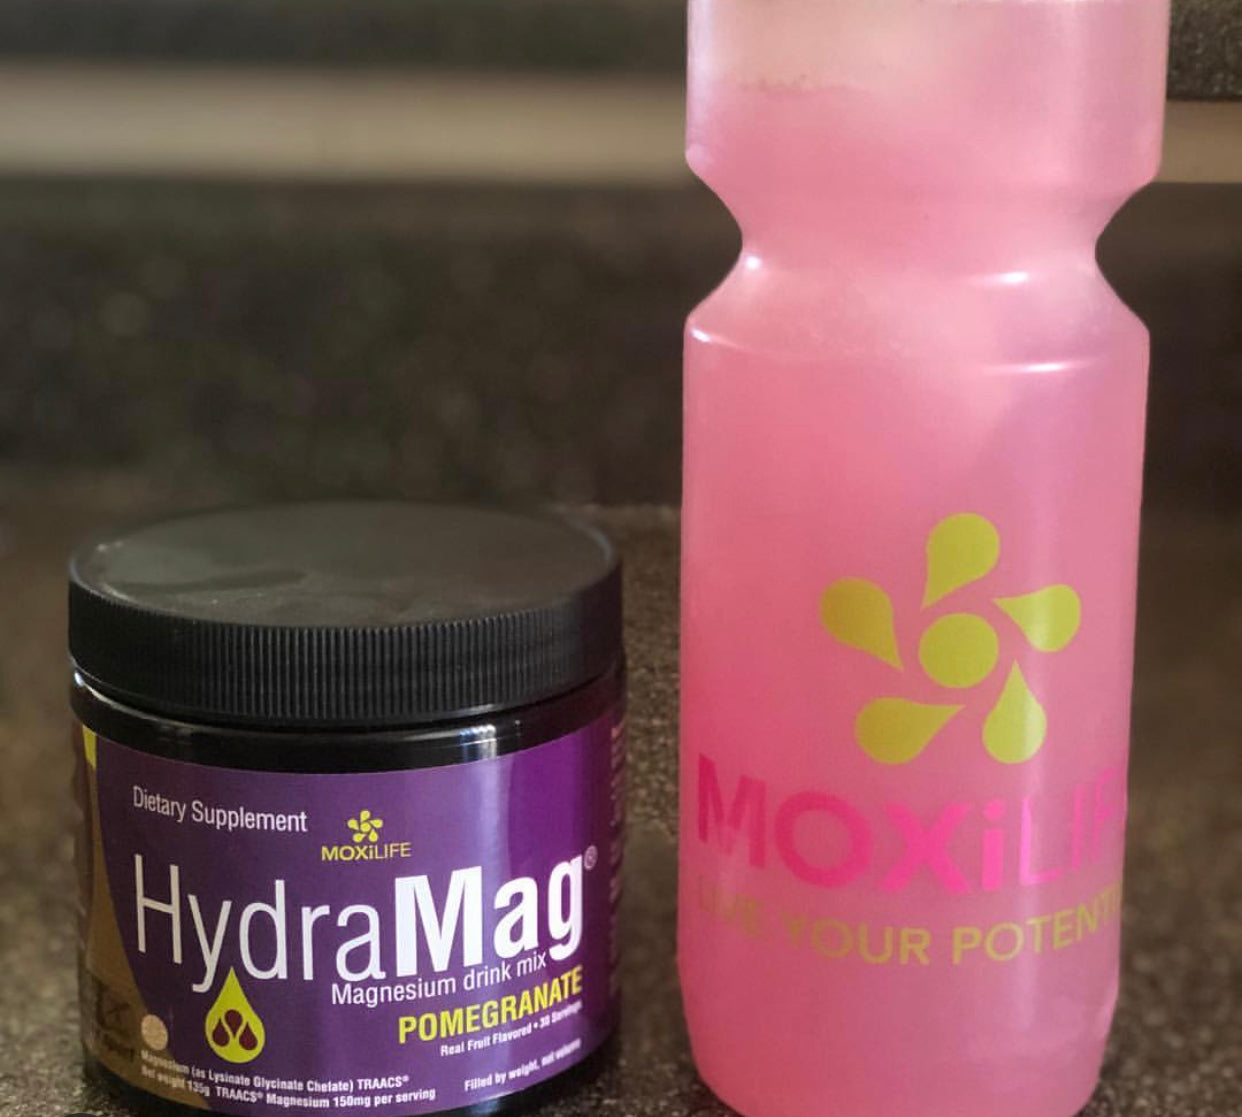 Hydramag 30 svg Canister sitting next to Moxilife water bottle with pink pomegranate hydramag inside